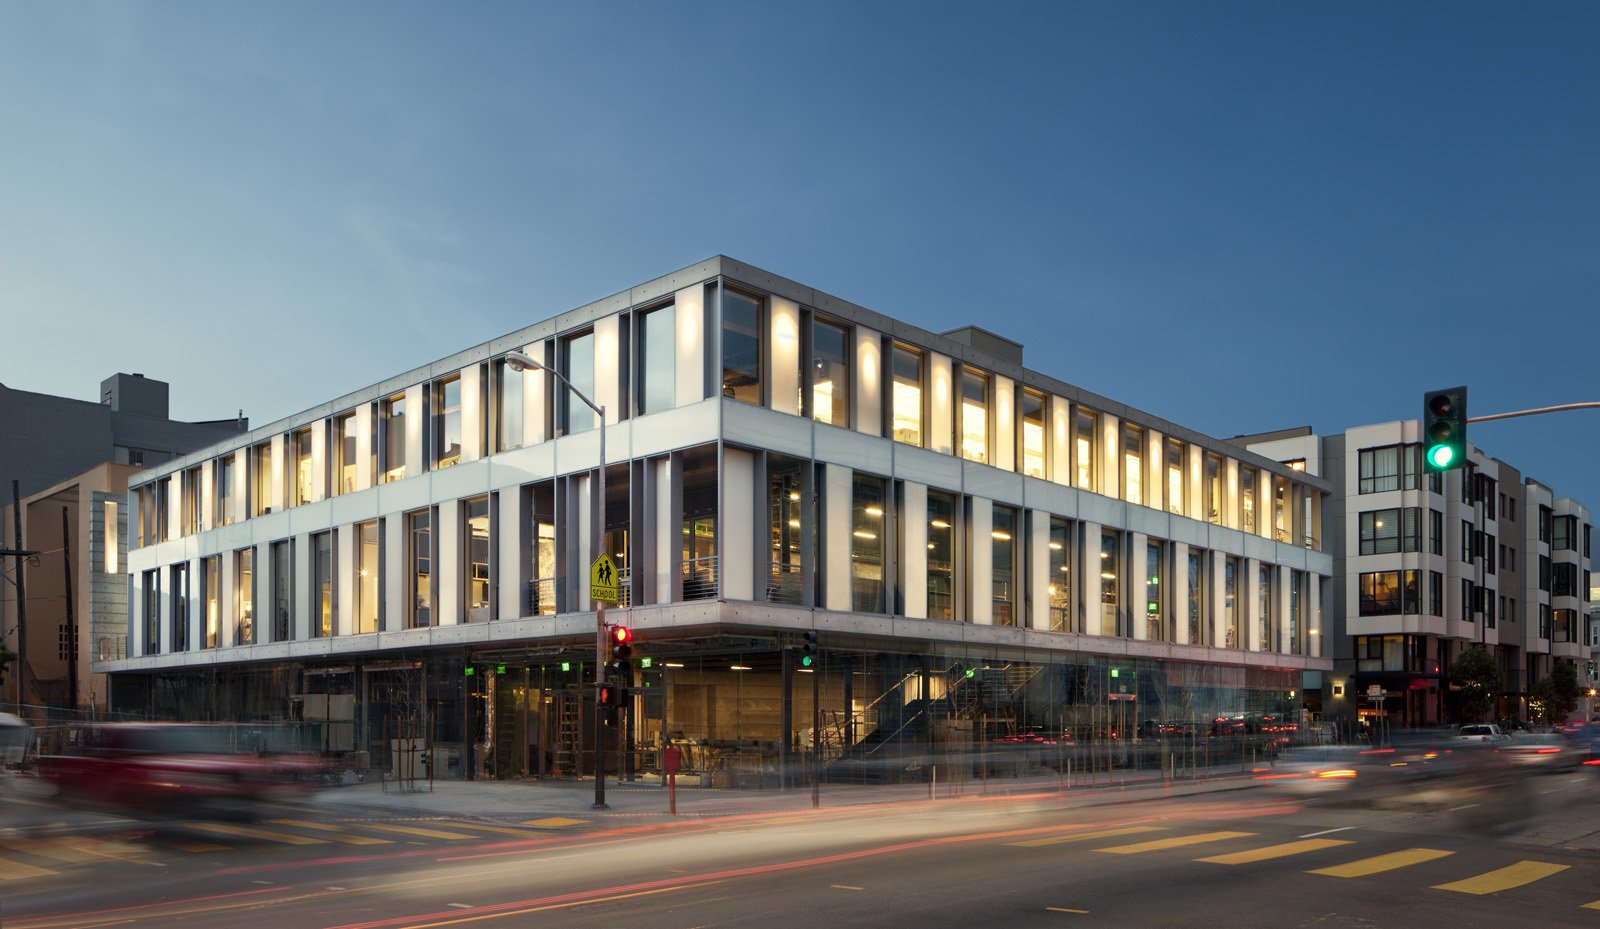 The SFJAZZ Center is located at the intersection of Fell and Franklin streets in San Francisco, California.  Photo 1 of 3 in A New Cultural Hub for San Francisco